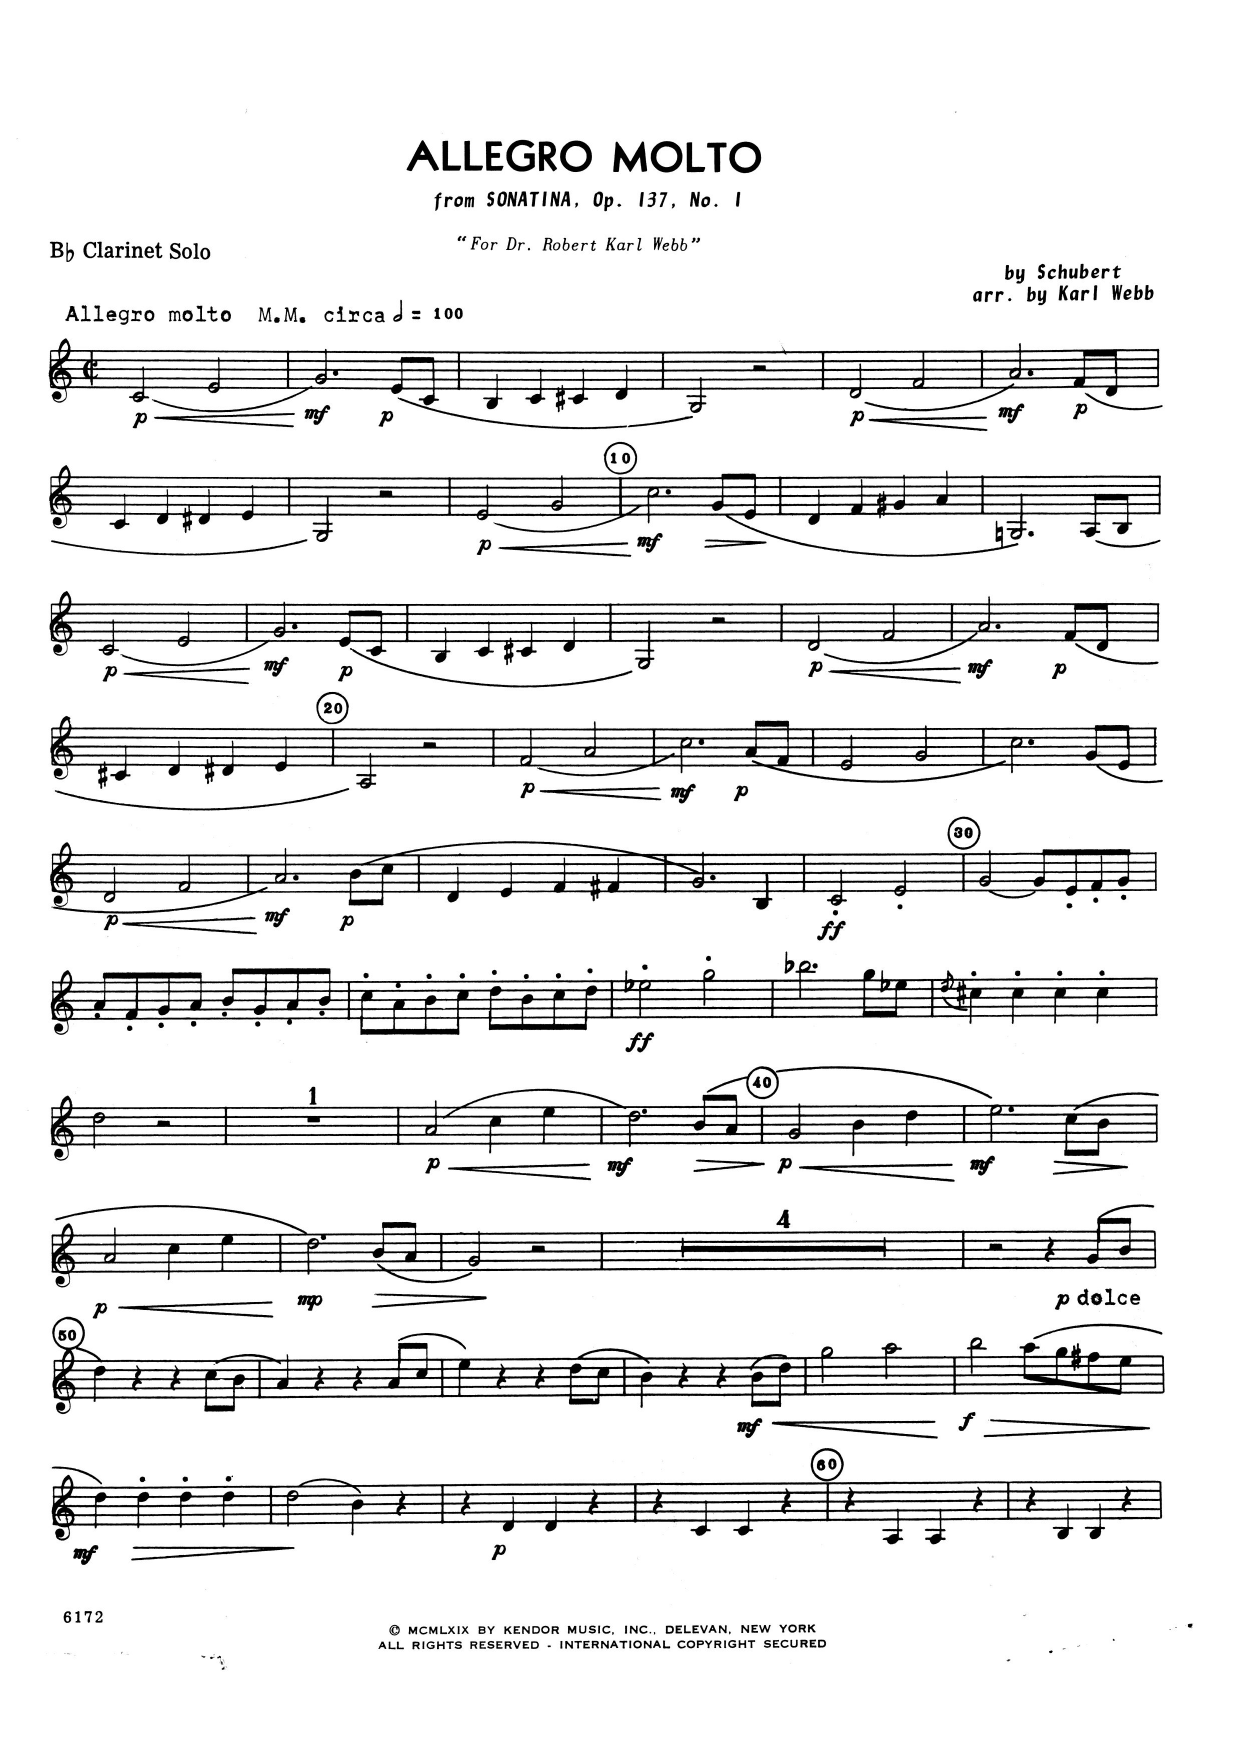 Allegro Molto (from Sonatina, Opus 137, No. 1) (complete set of parts) sheet music for clarinet and piano by Franz Schubert. Score Image Preview.